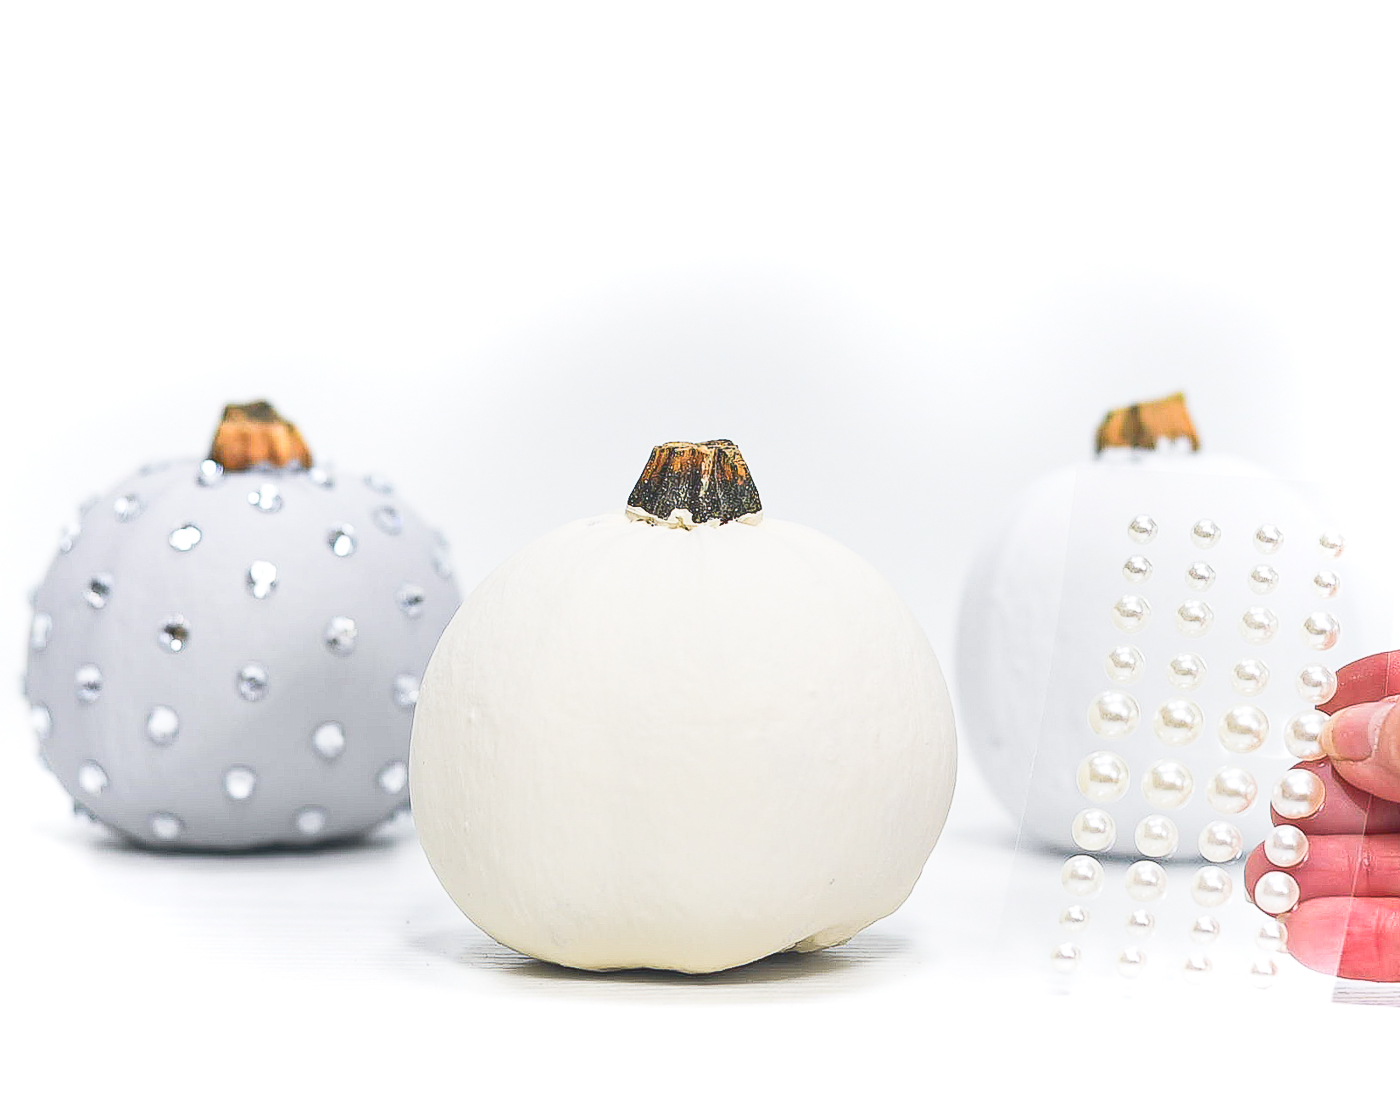 No Carve Jeweled Pumpkins - Rhinestones on Pumpkins - Bling Pumpkins - Glam Pumpkins - Painted Pumpkins.